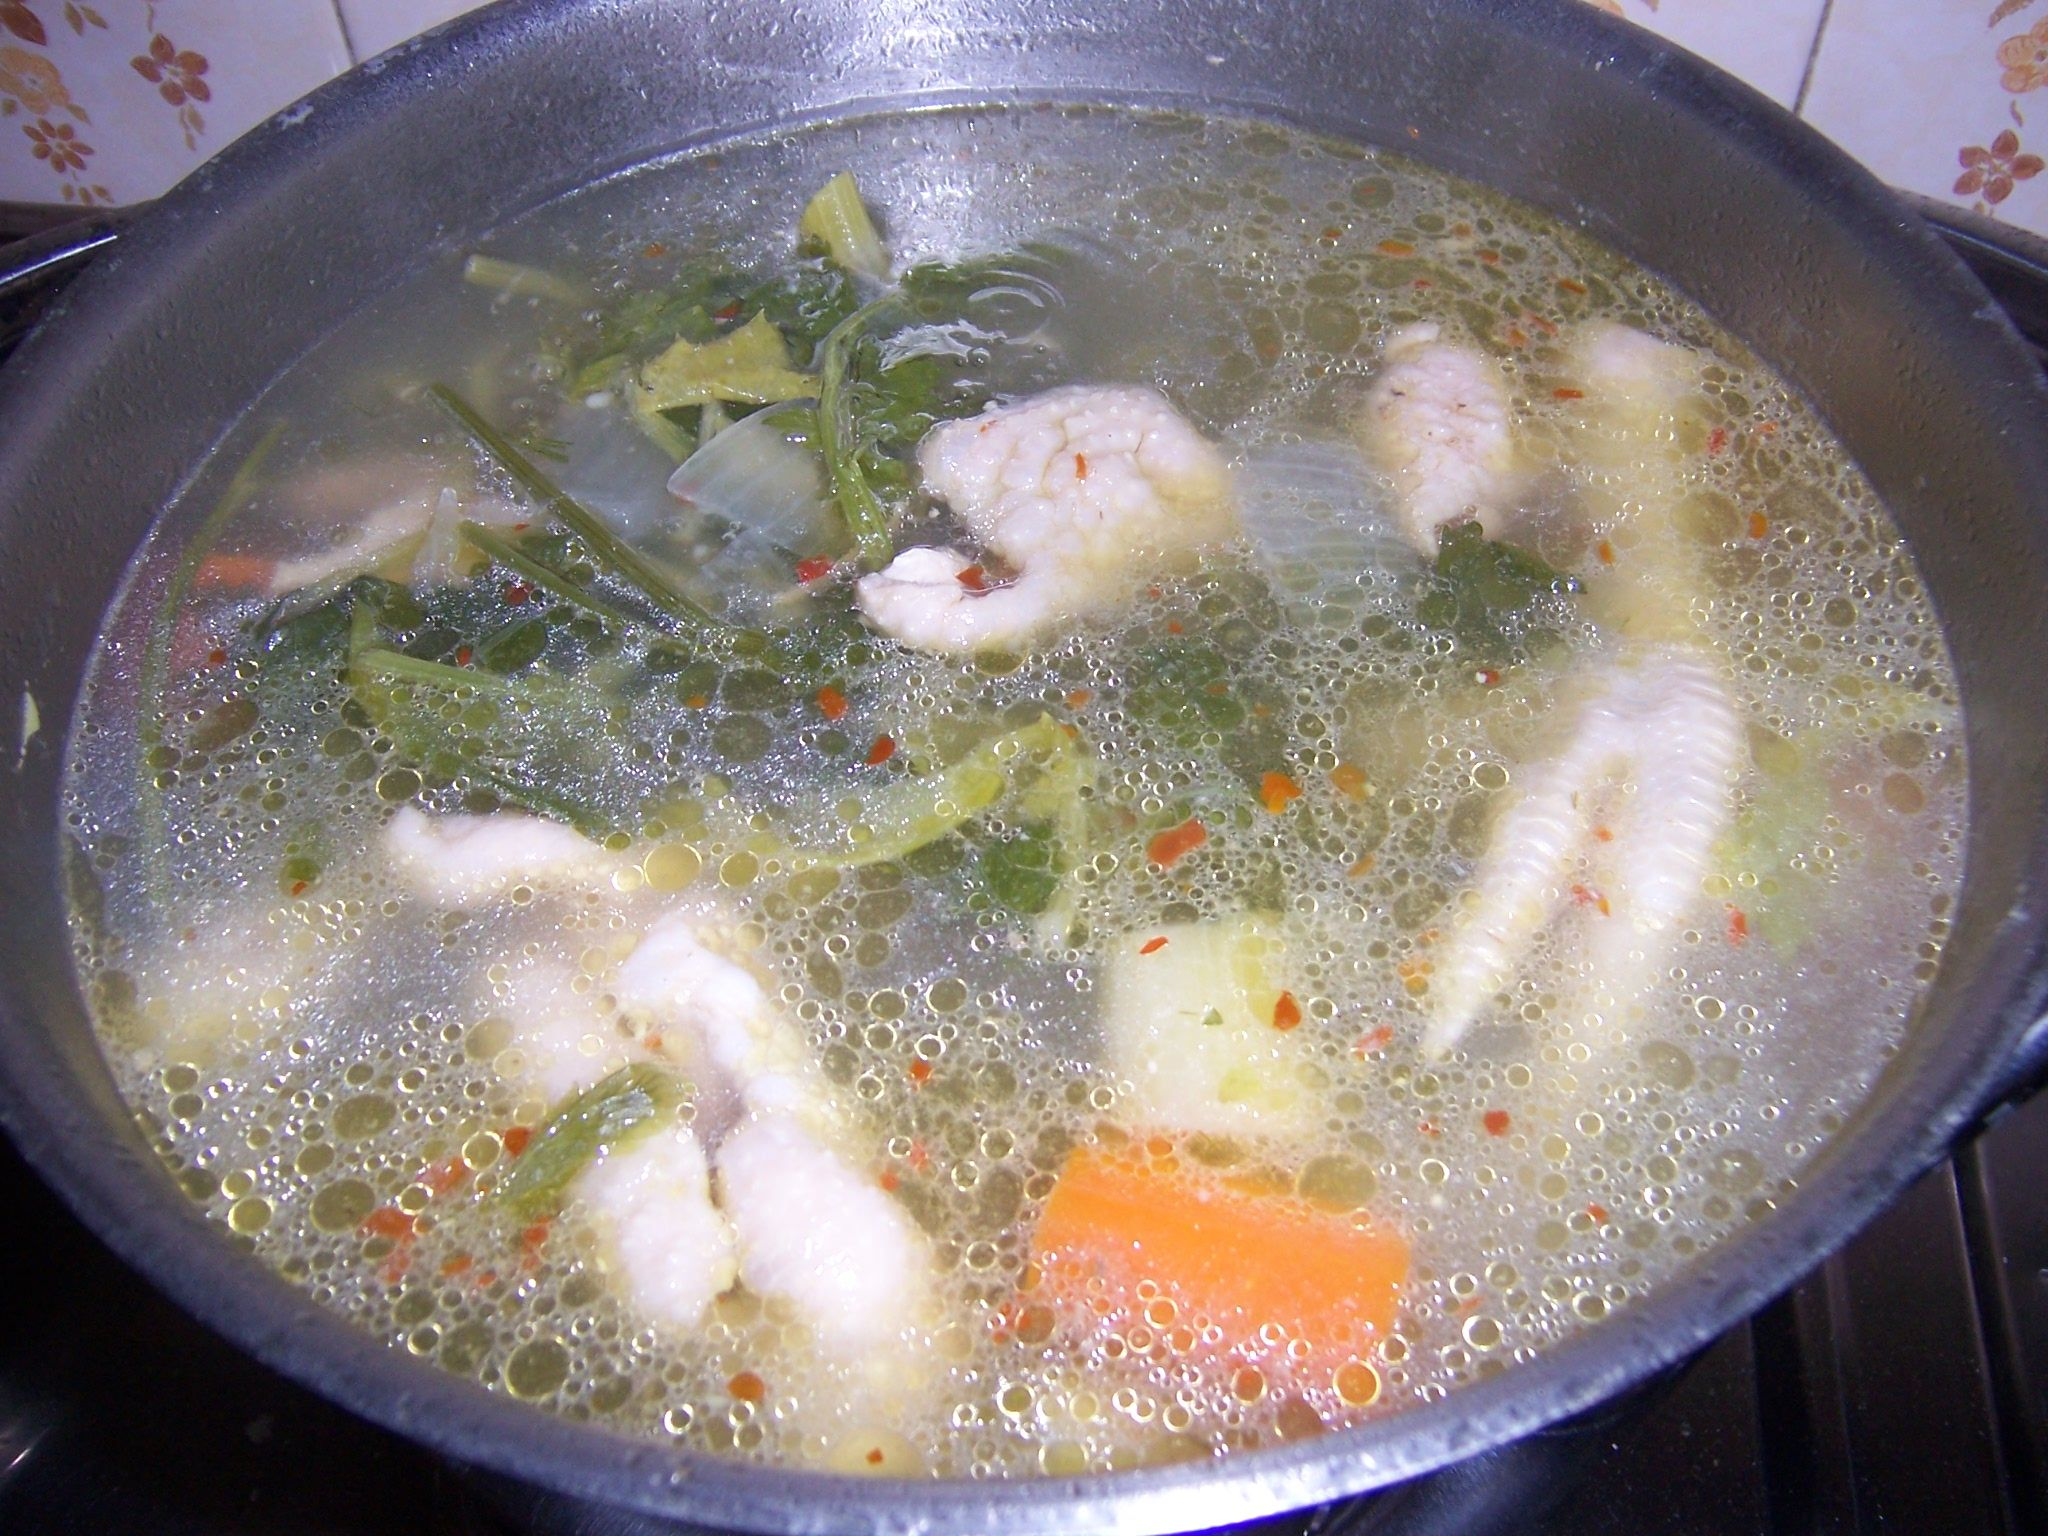 Recipes from sicily easy home made chicken brothe it for soups recipes from sicily easy home made chicken brothe it for soups rice baby food etc forumfinder Choice Image